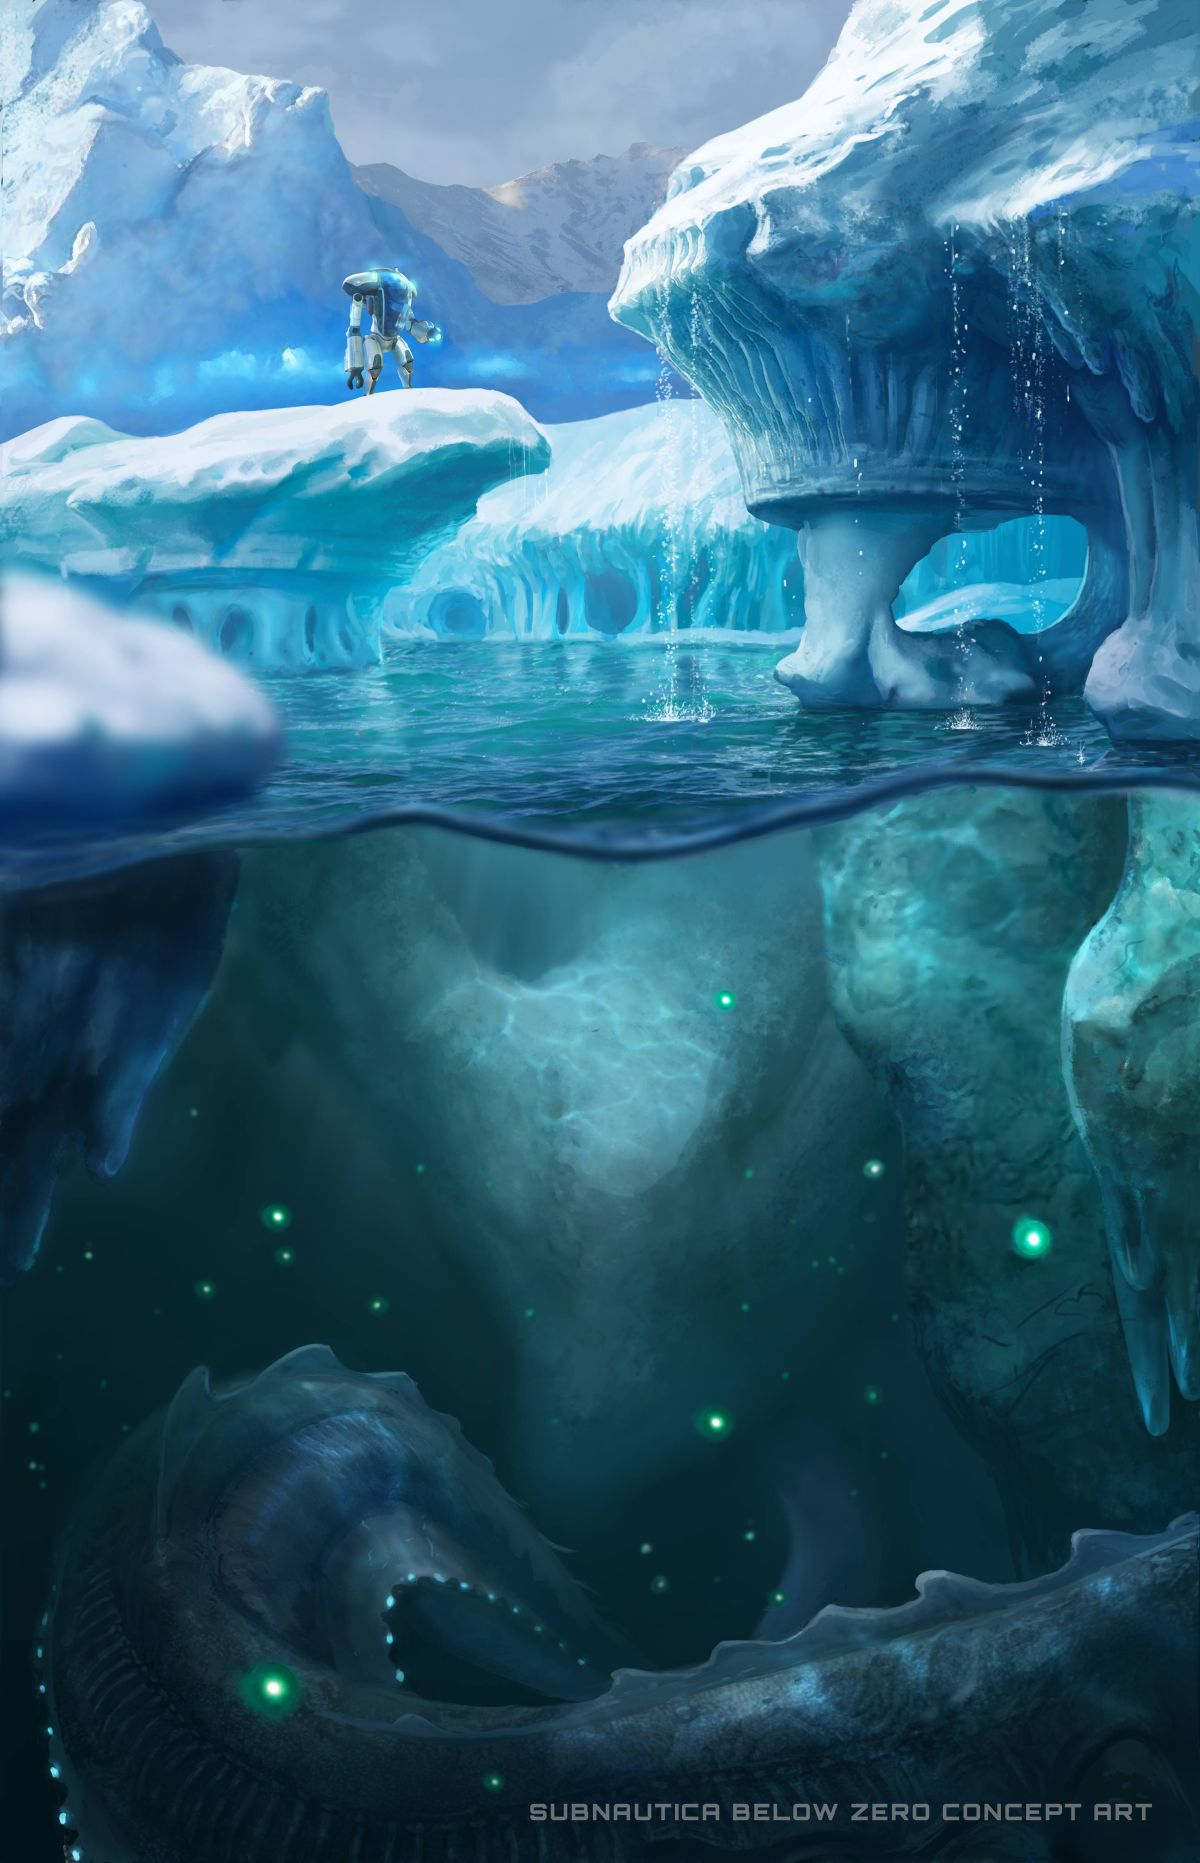 Subnautica: Below Zero returns to the sea for a brand-new